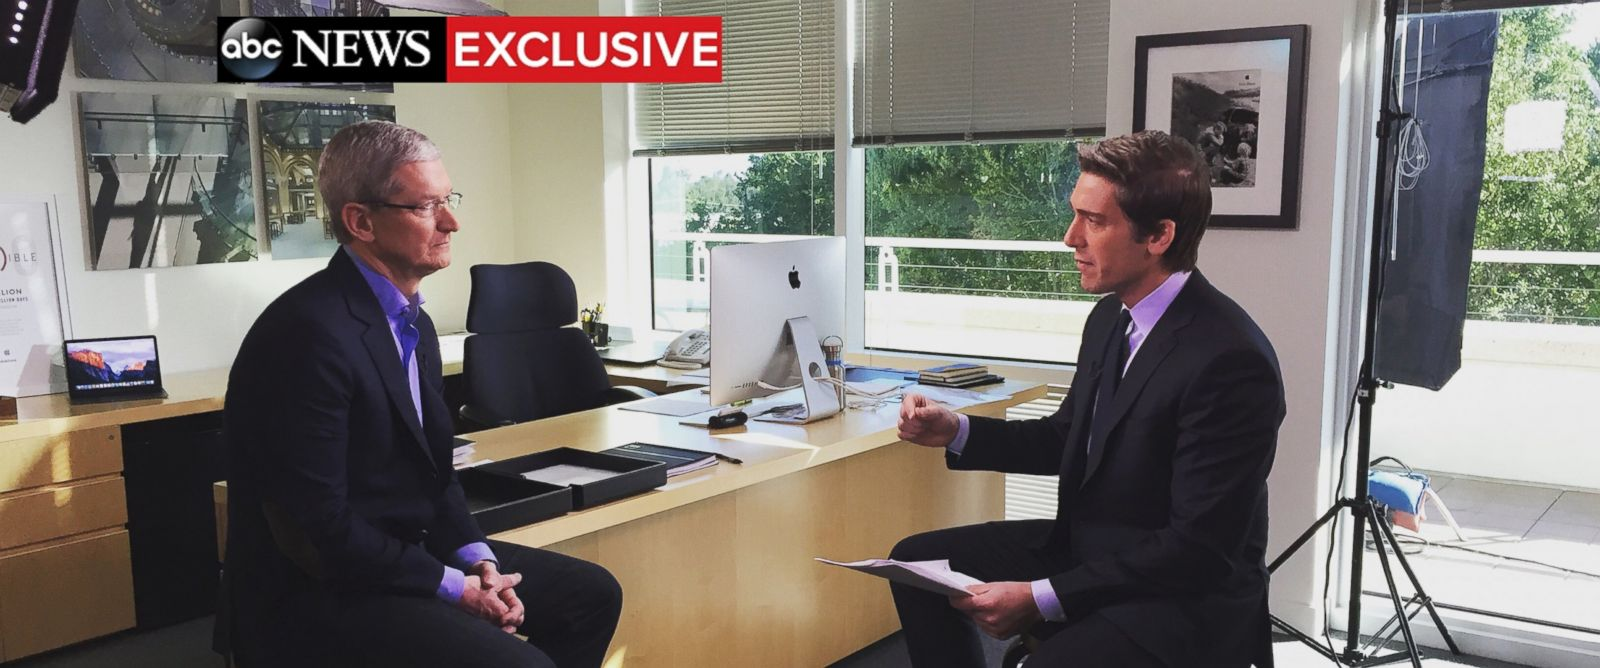 exclusive apple ceo tim cook says iphone cracking software photo apple ceo tim cook sat down abc news anchor david muir for an